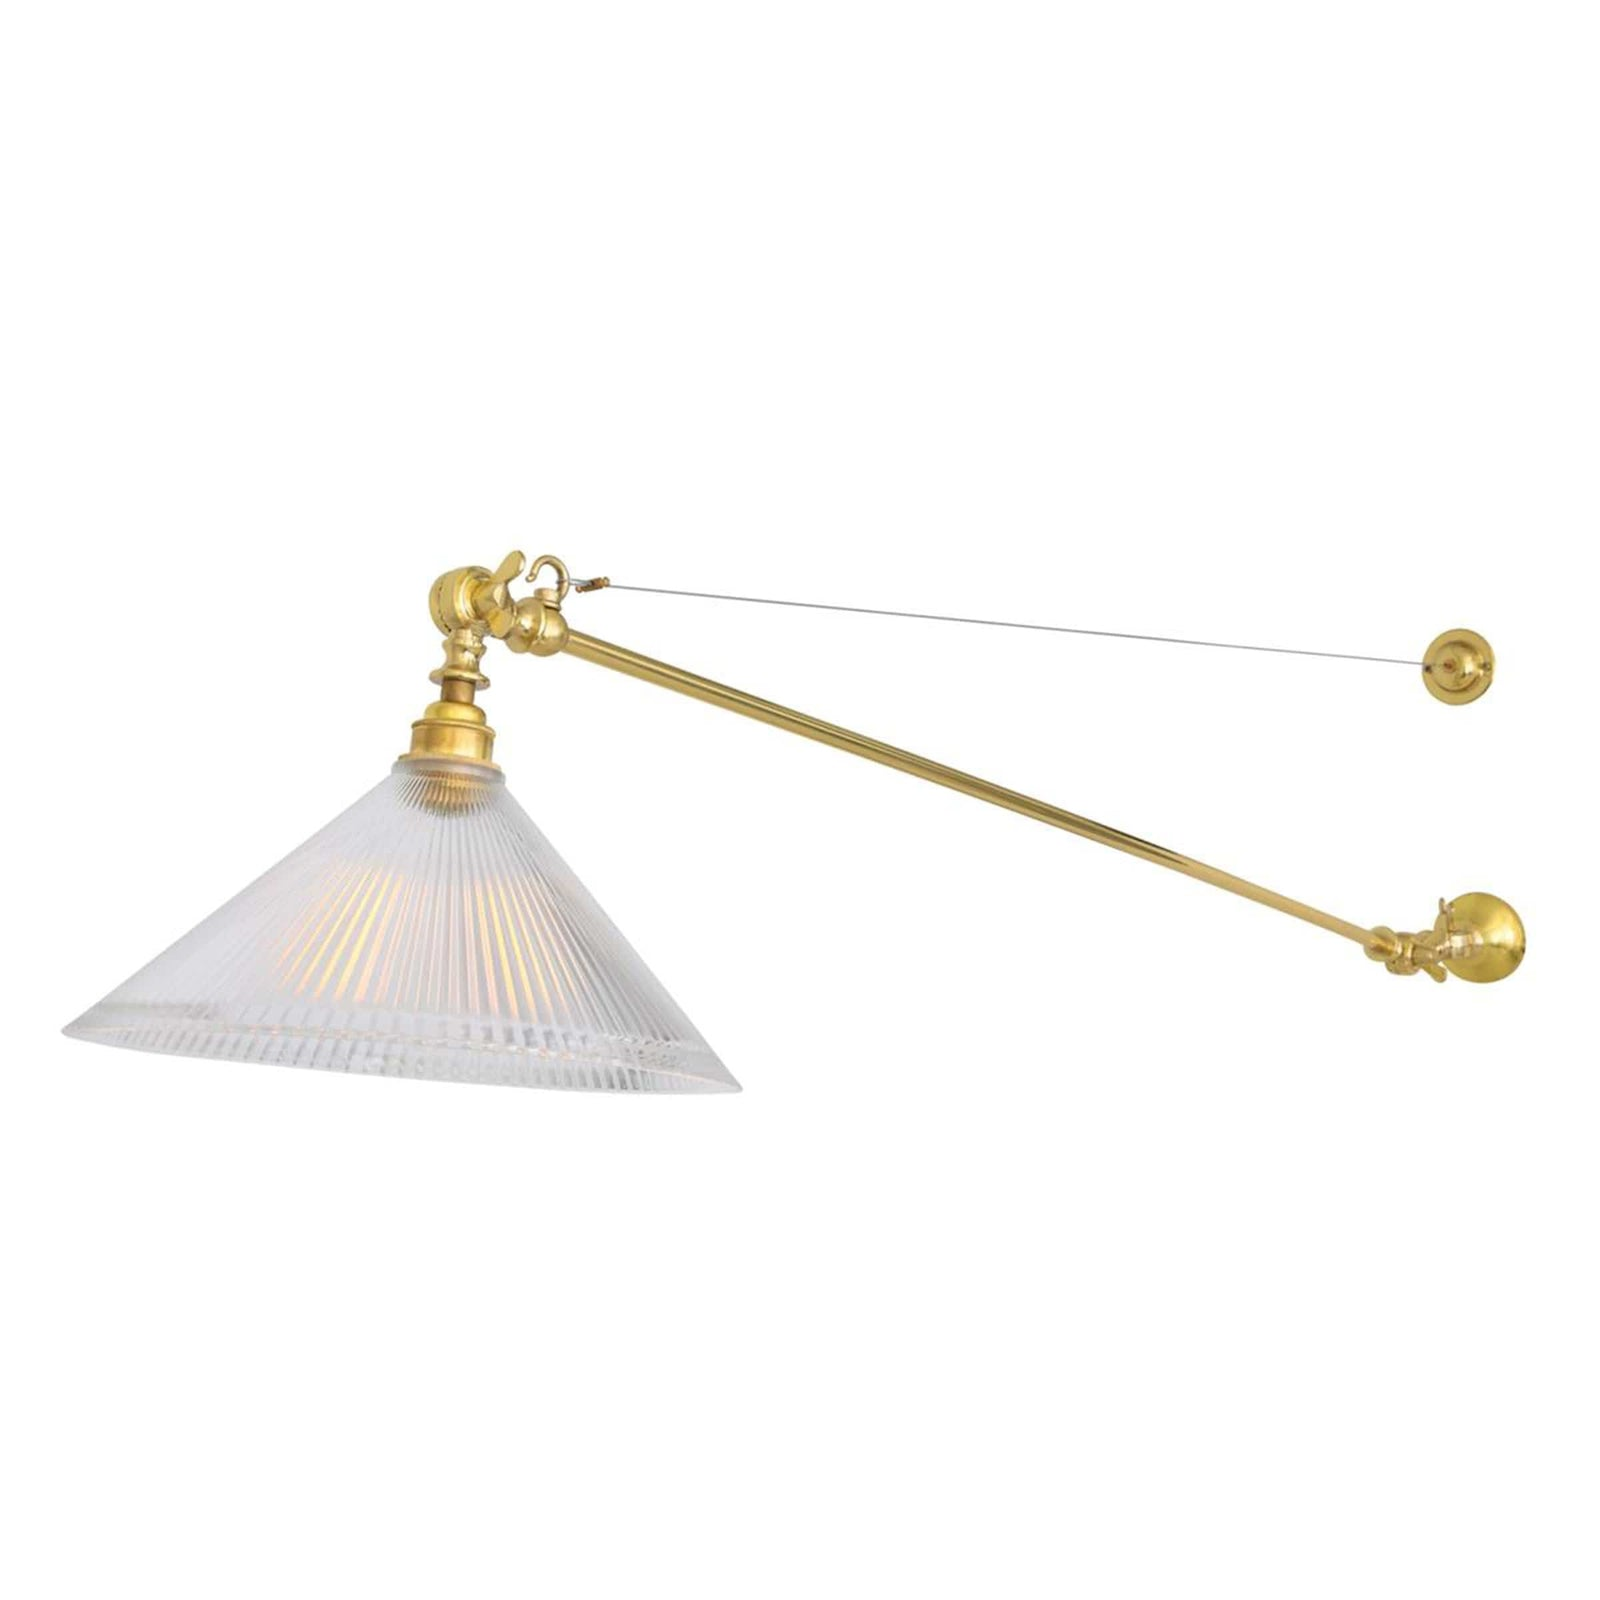 Mullan Lighting Lighting Nyx Adjustable Coolie Glass Wall Light